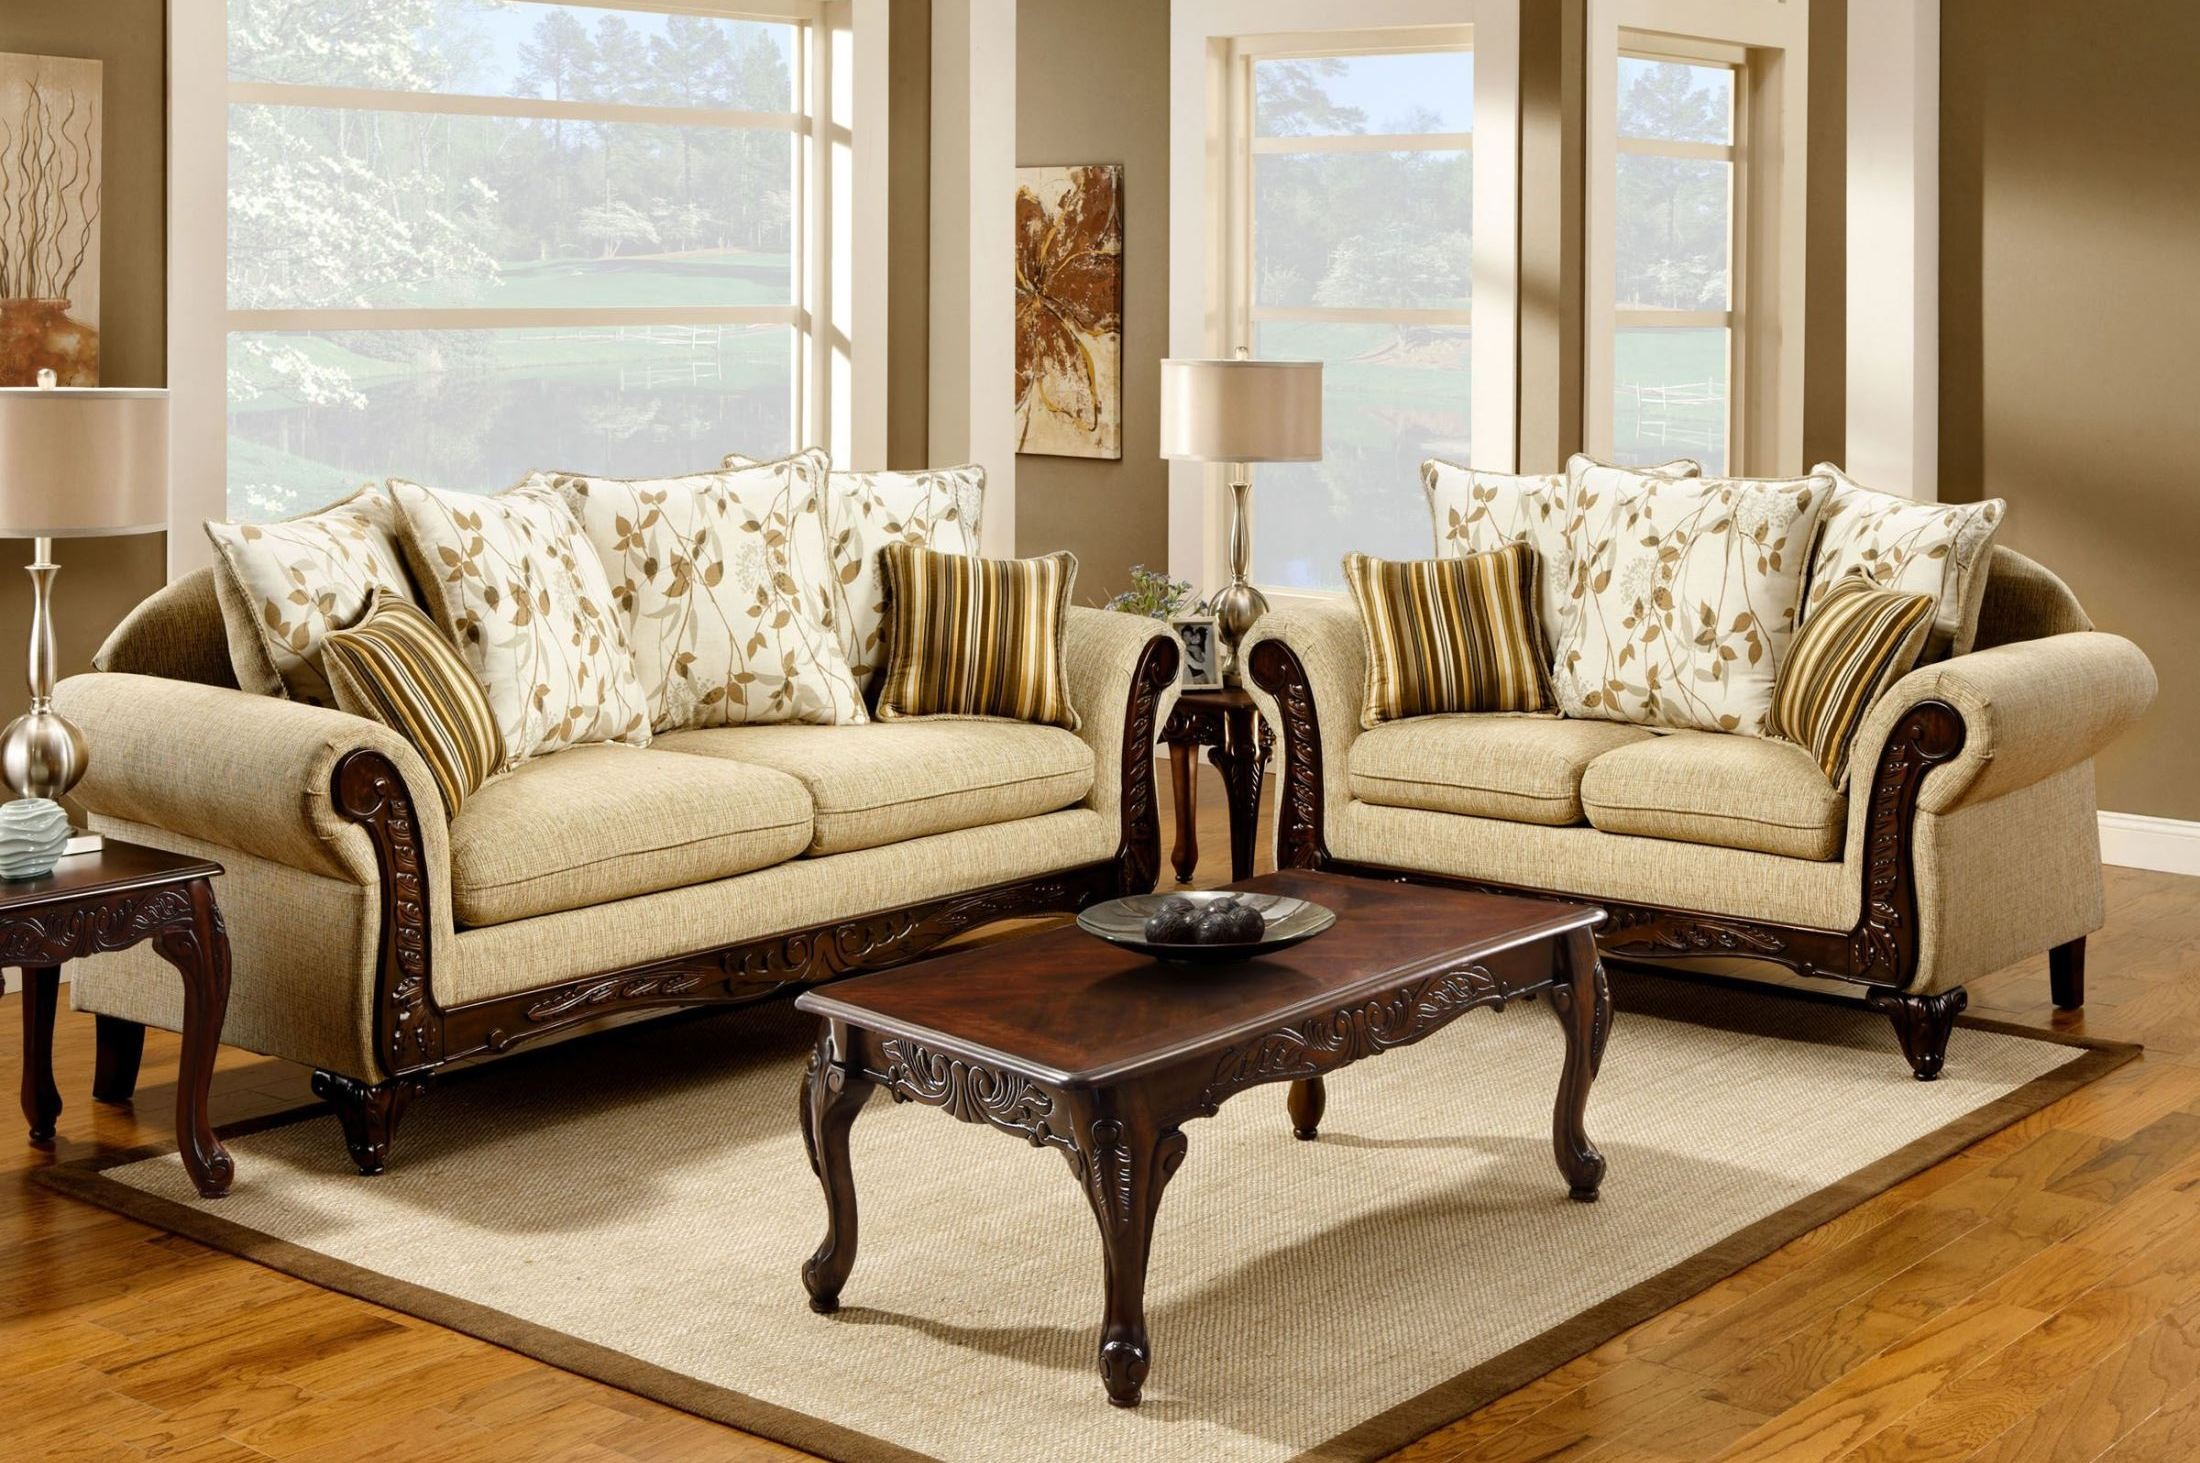 Doncaster Tan Fabric Living Room Set From Furniture Of America SM7435 SF